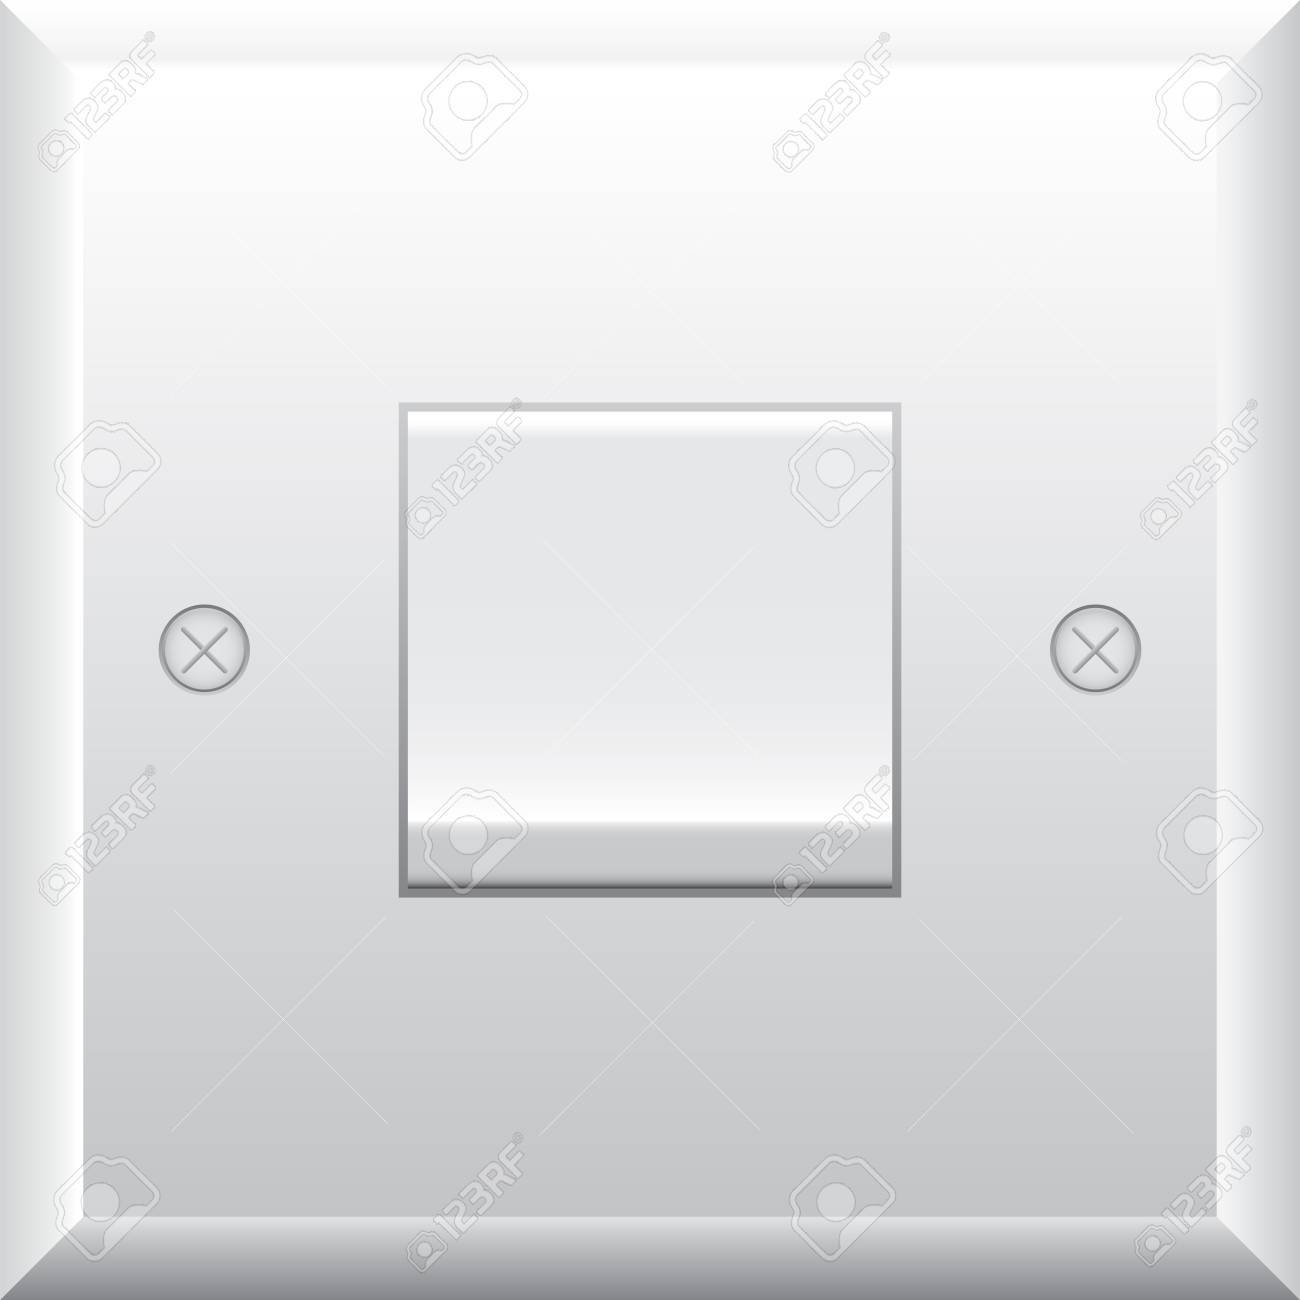 Modern Light Switches And Outlets. Awesome Custom Adhesive Labels ...